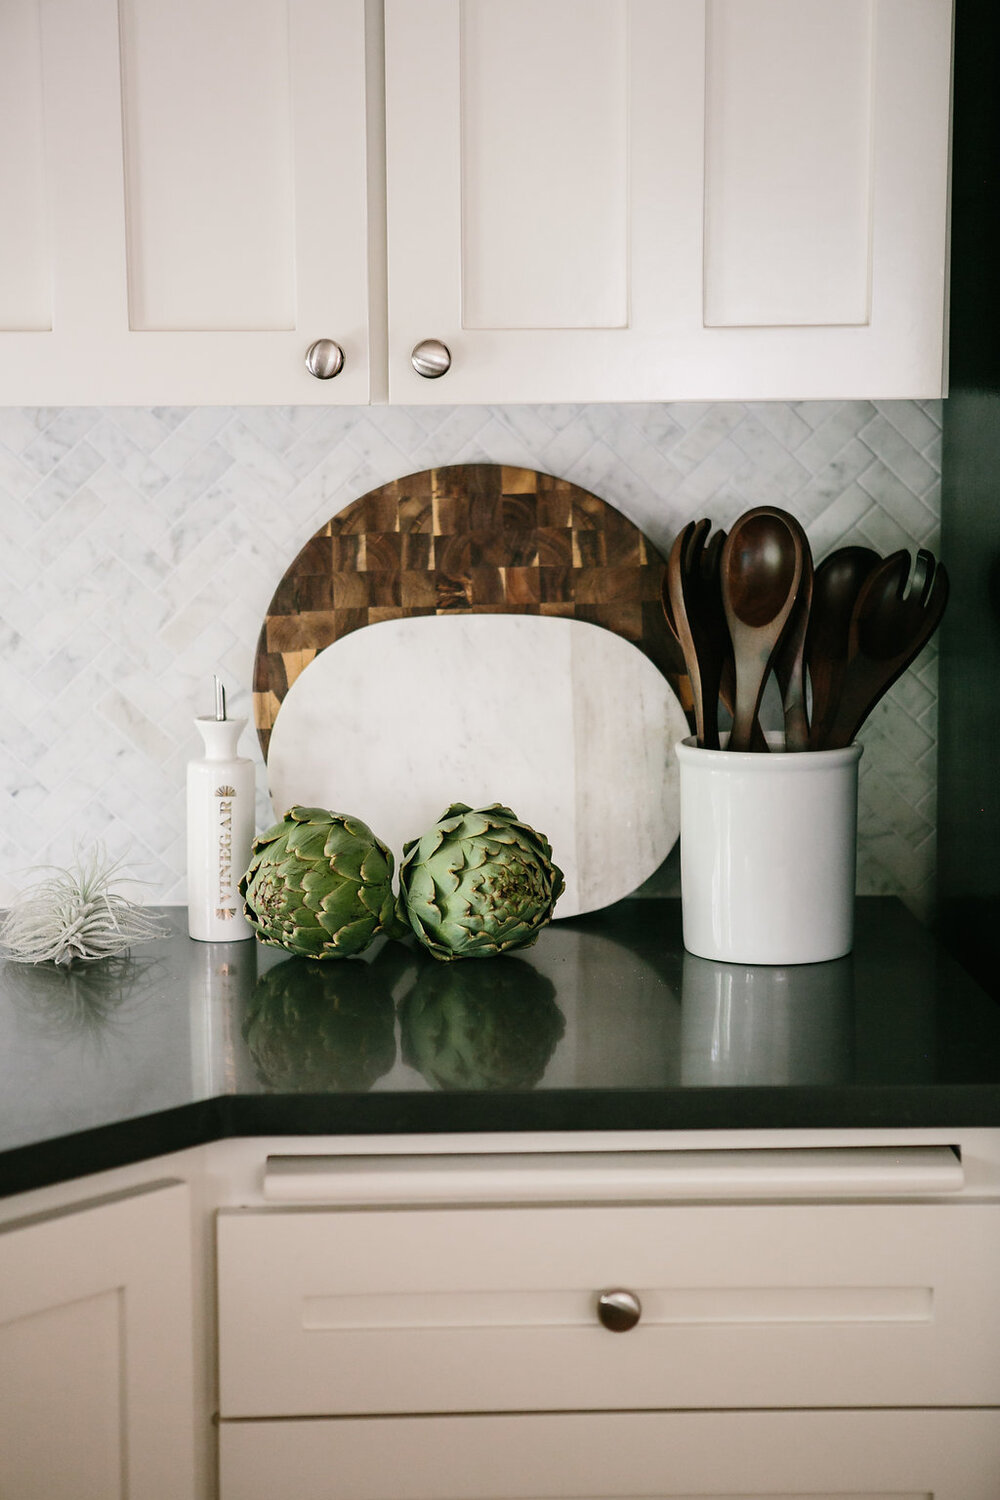 How To Place Cabinet Knobs According To An Interior Designer